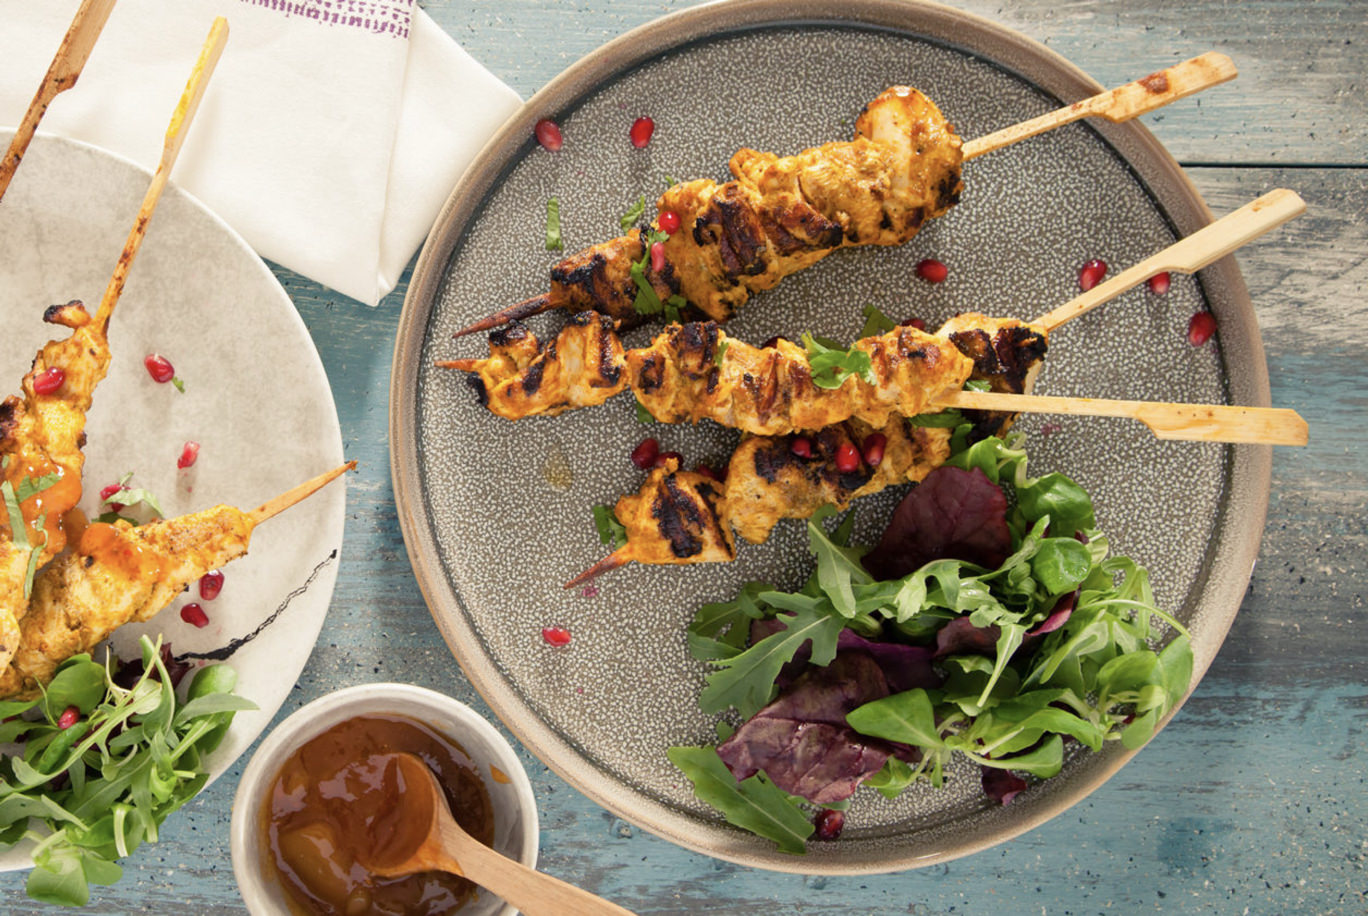 Grilled Butter Chicken Skewers with Naan Bread Recipe